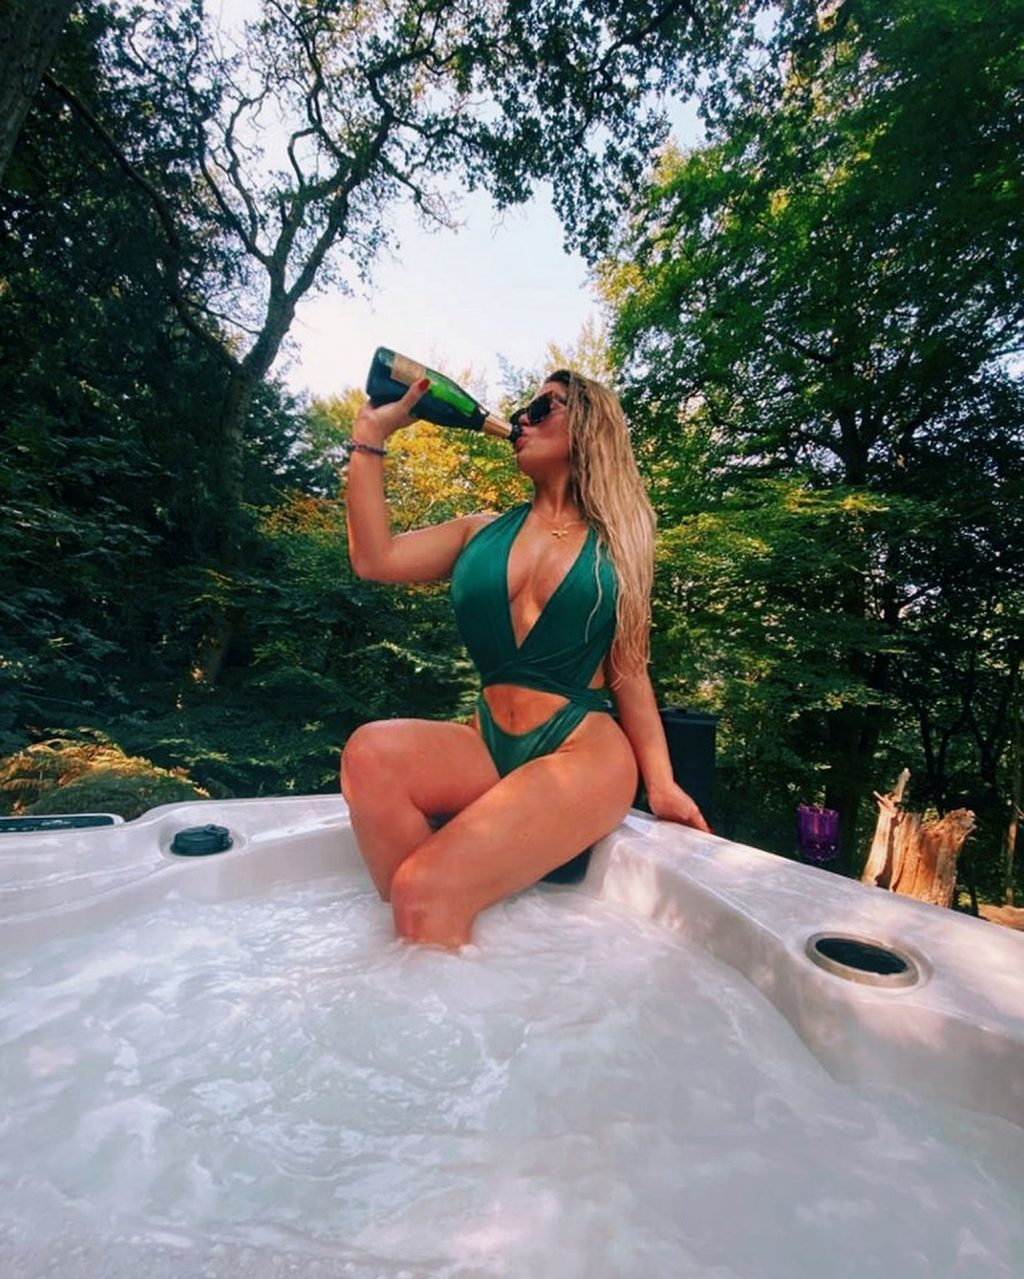 Bianca Gascoigne Shows Off Her Amazing Figure in a Green Swimsuit (13 Photos)